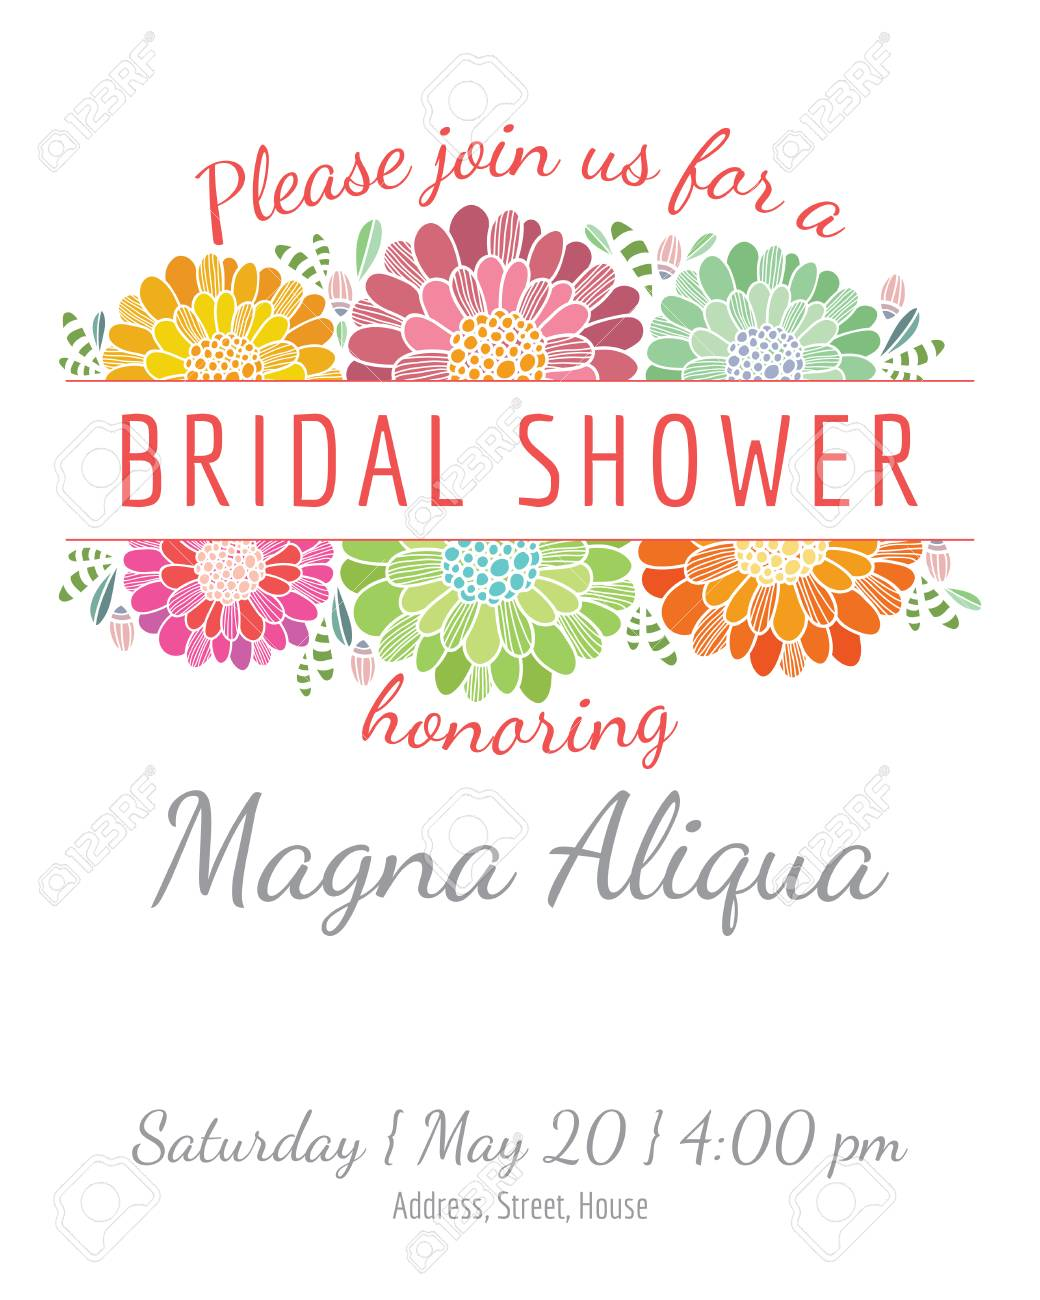 Invitation Bridal Shower Card Vector Template - For Invitations ...